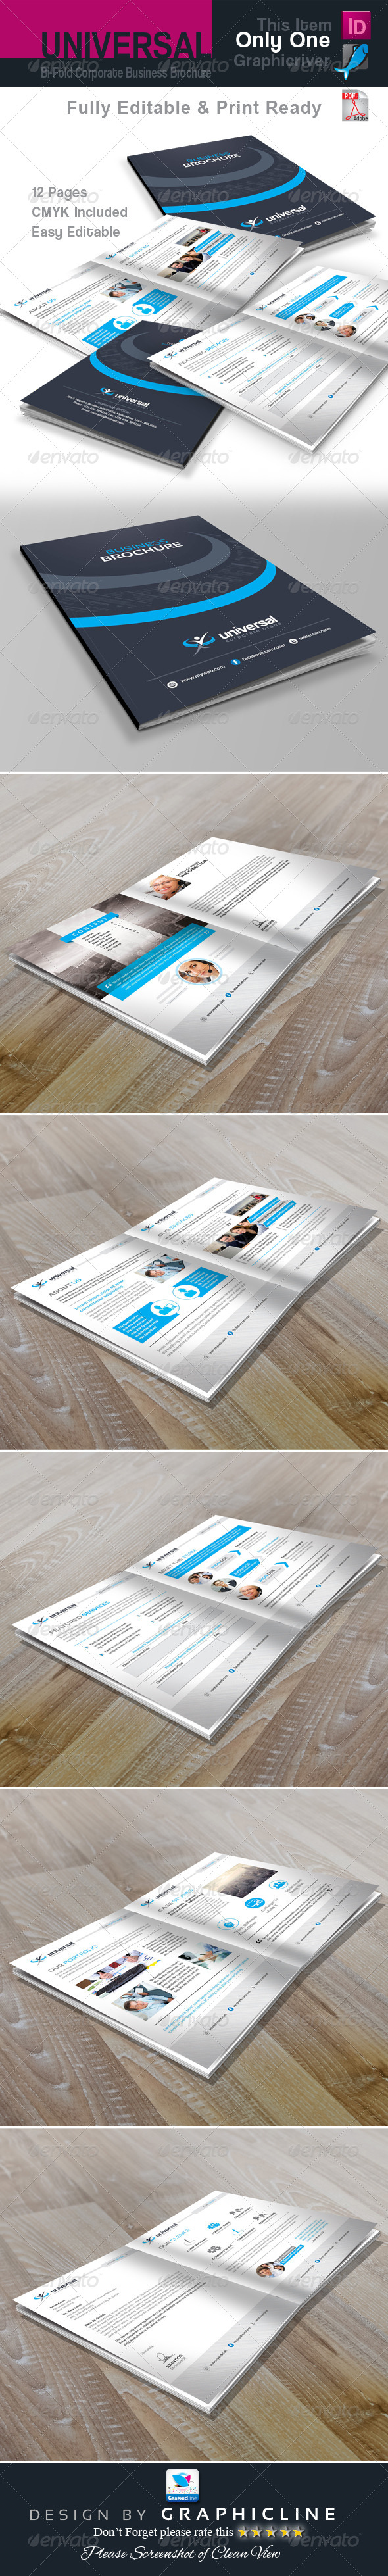 GraphicRiver Universal Corporate Bi Fold Business Brochure 7486008